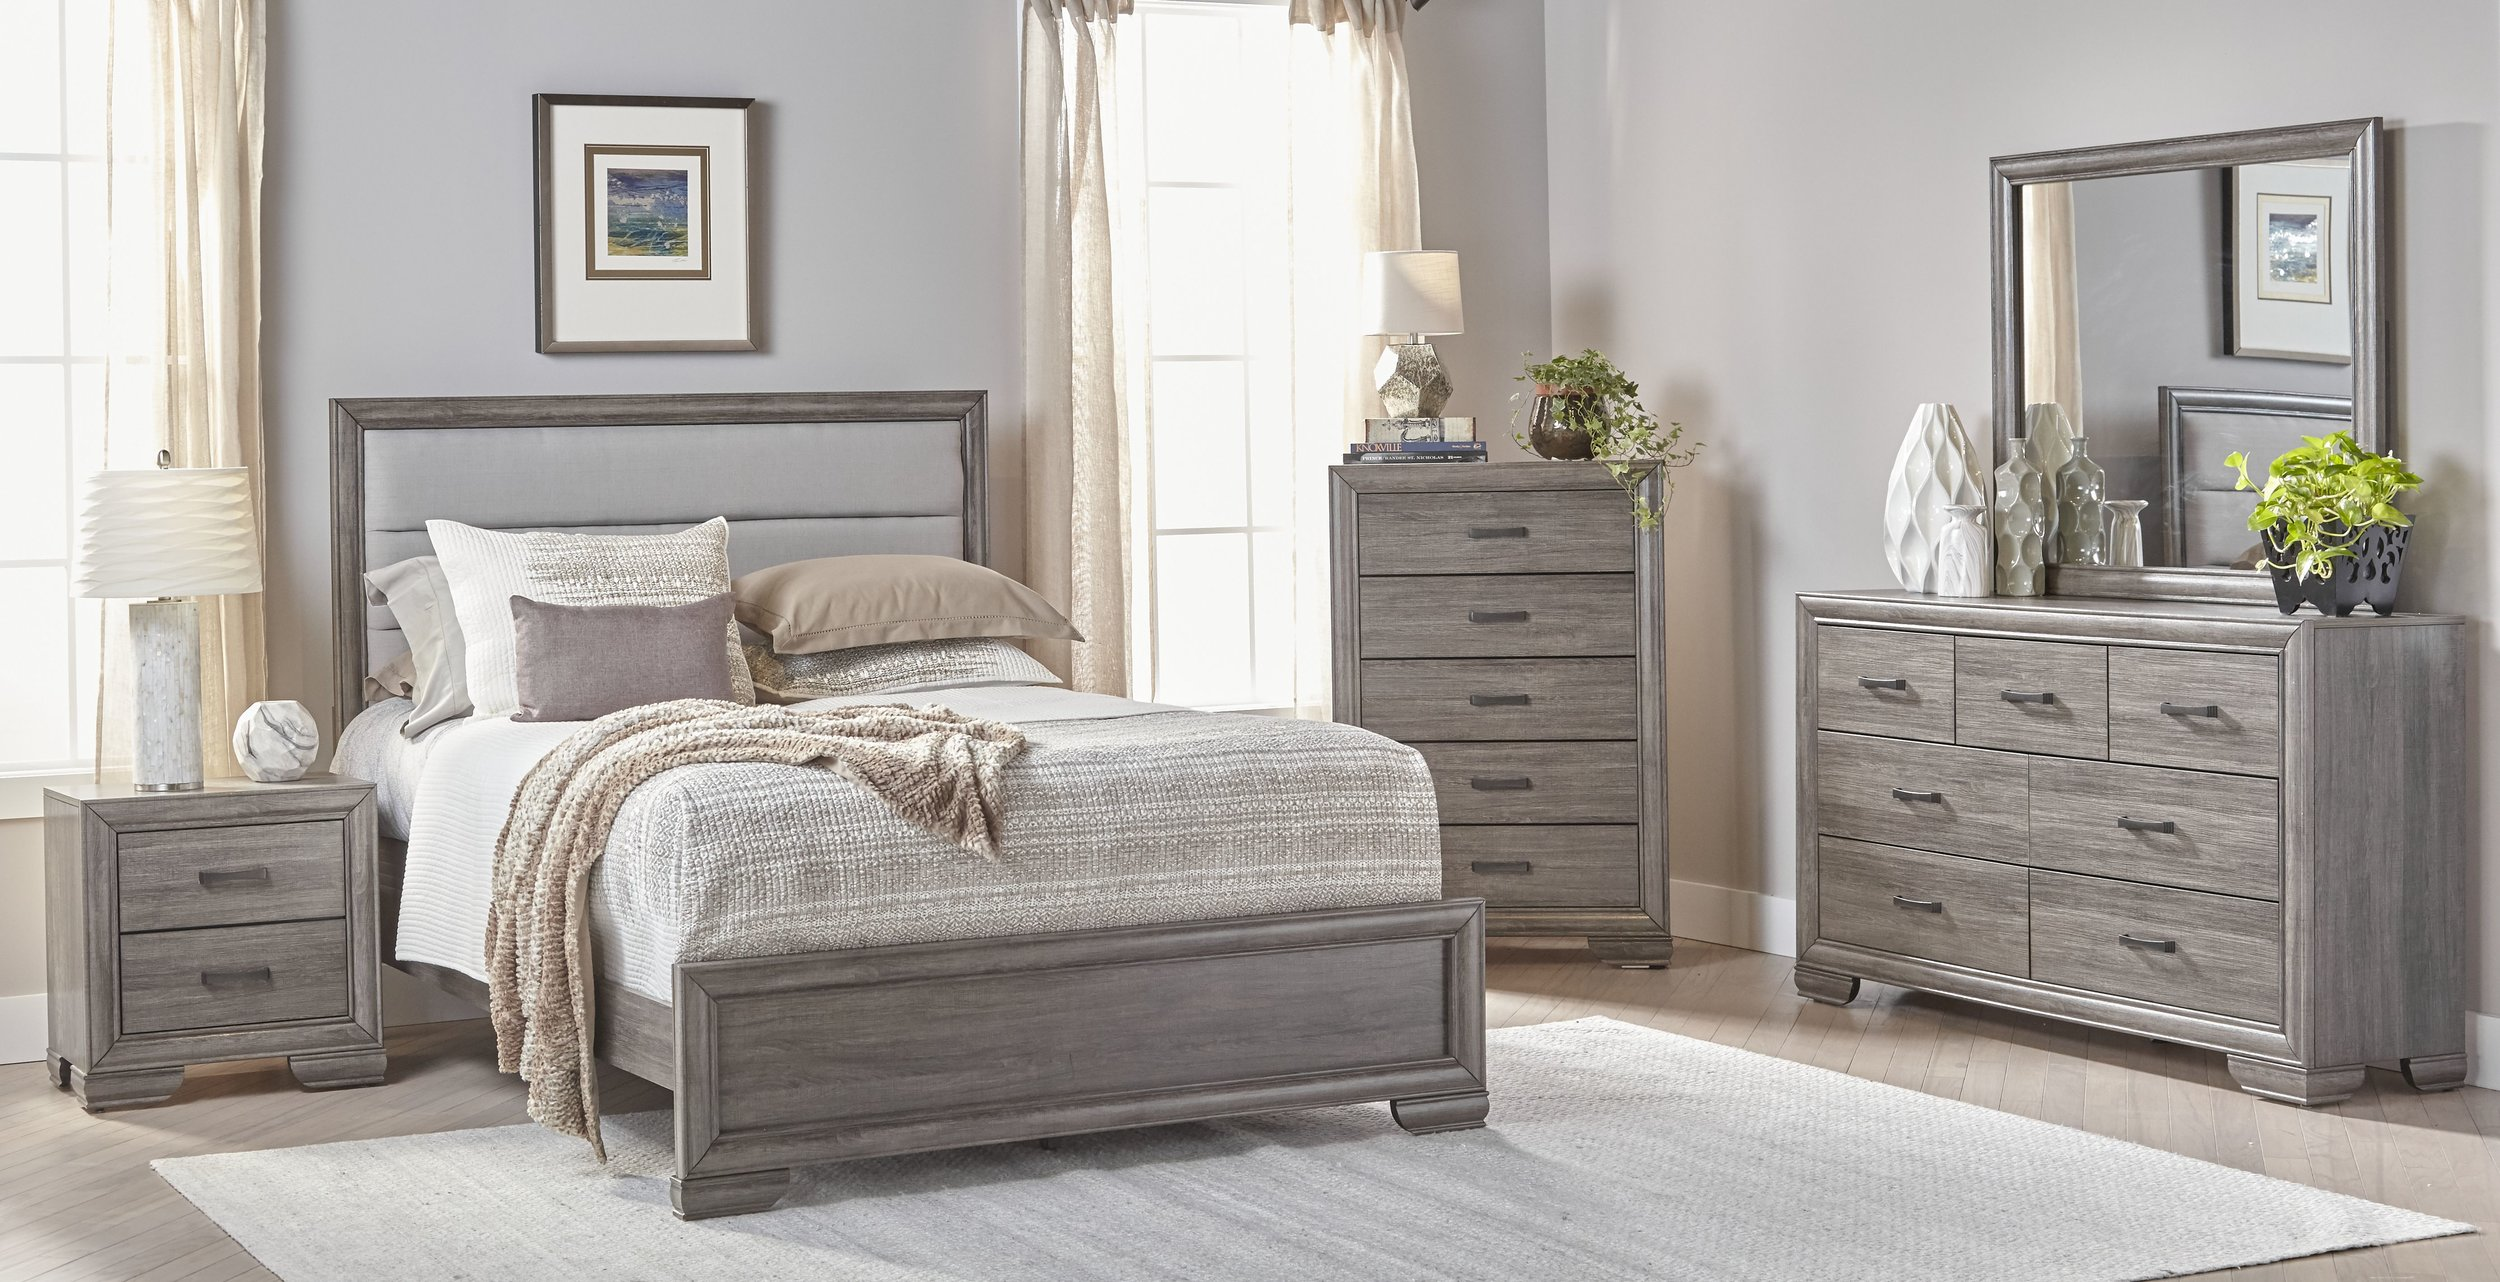 Freds Furniture Co Erie Pa Furniture Mattress Local